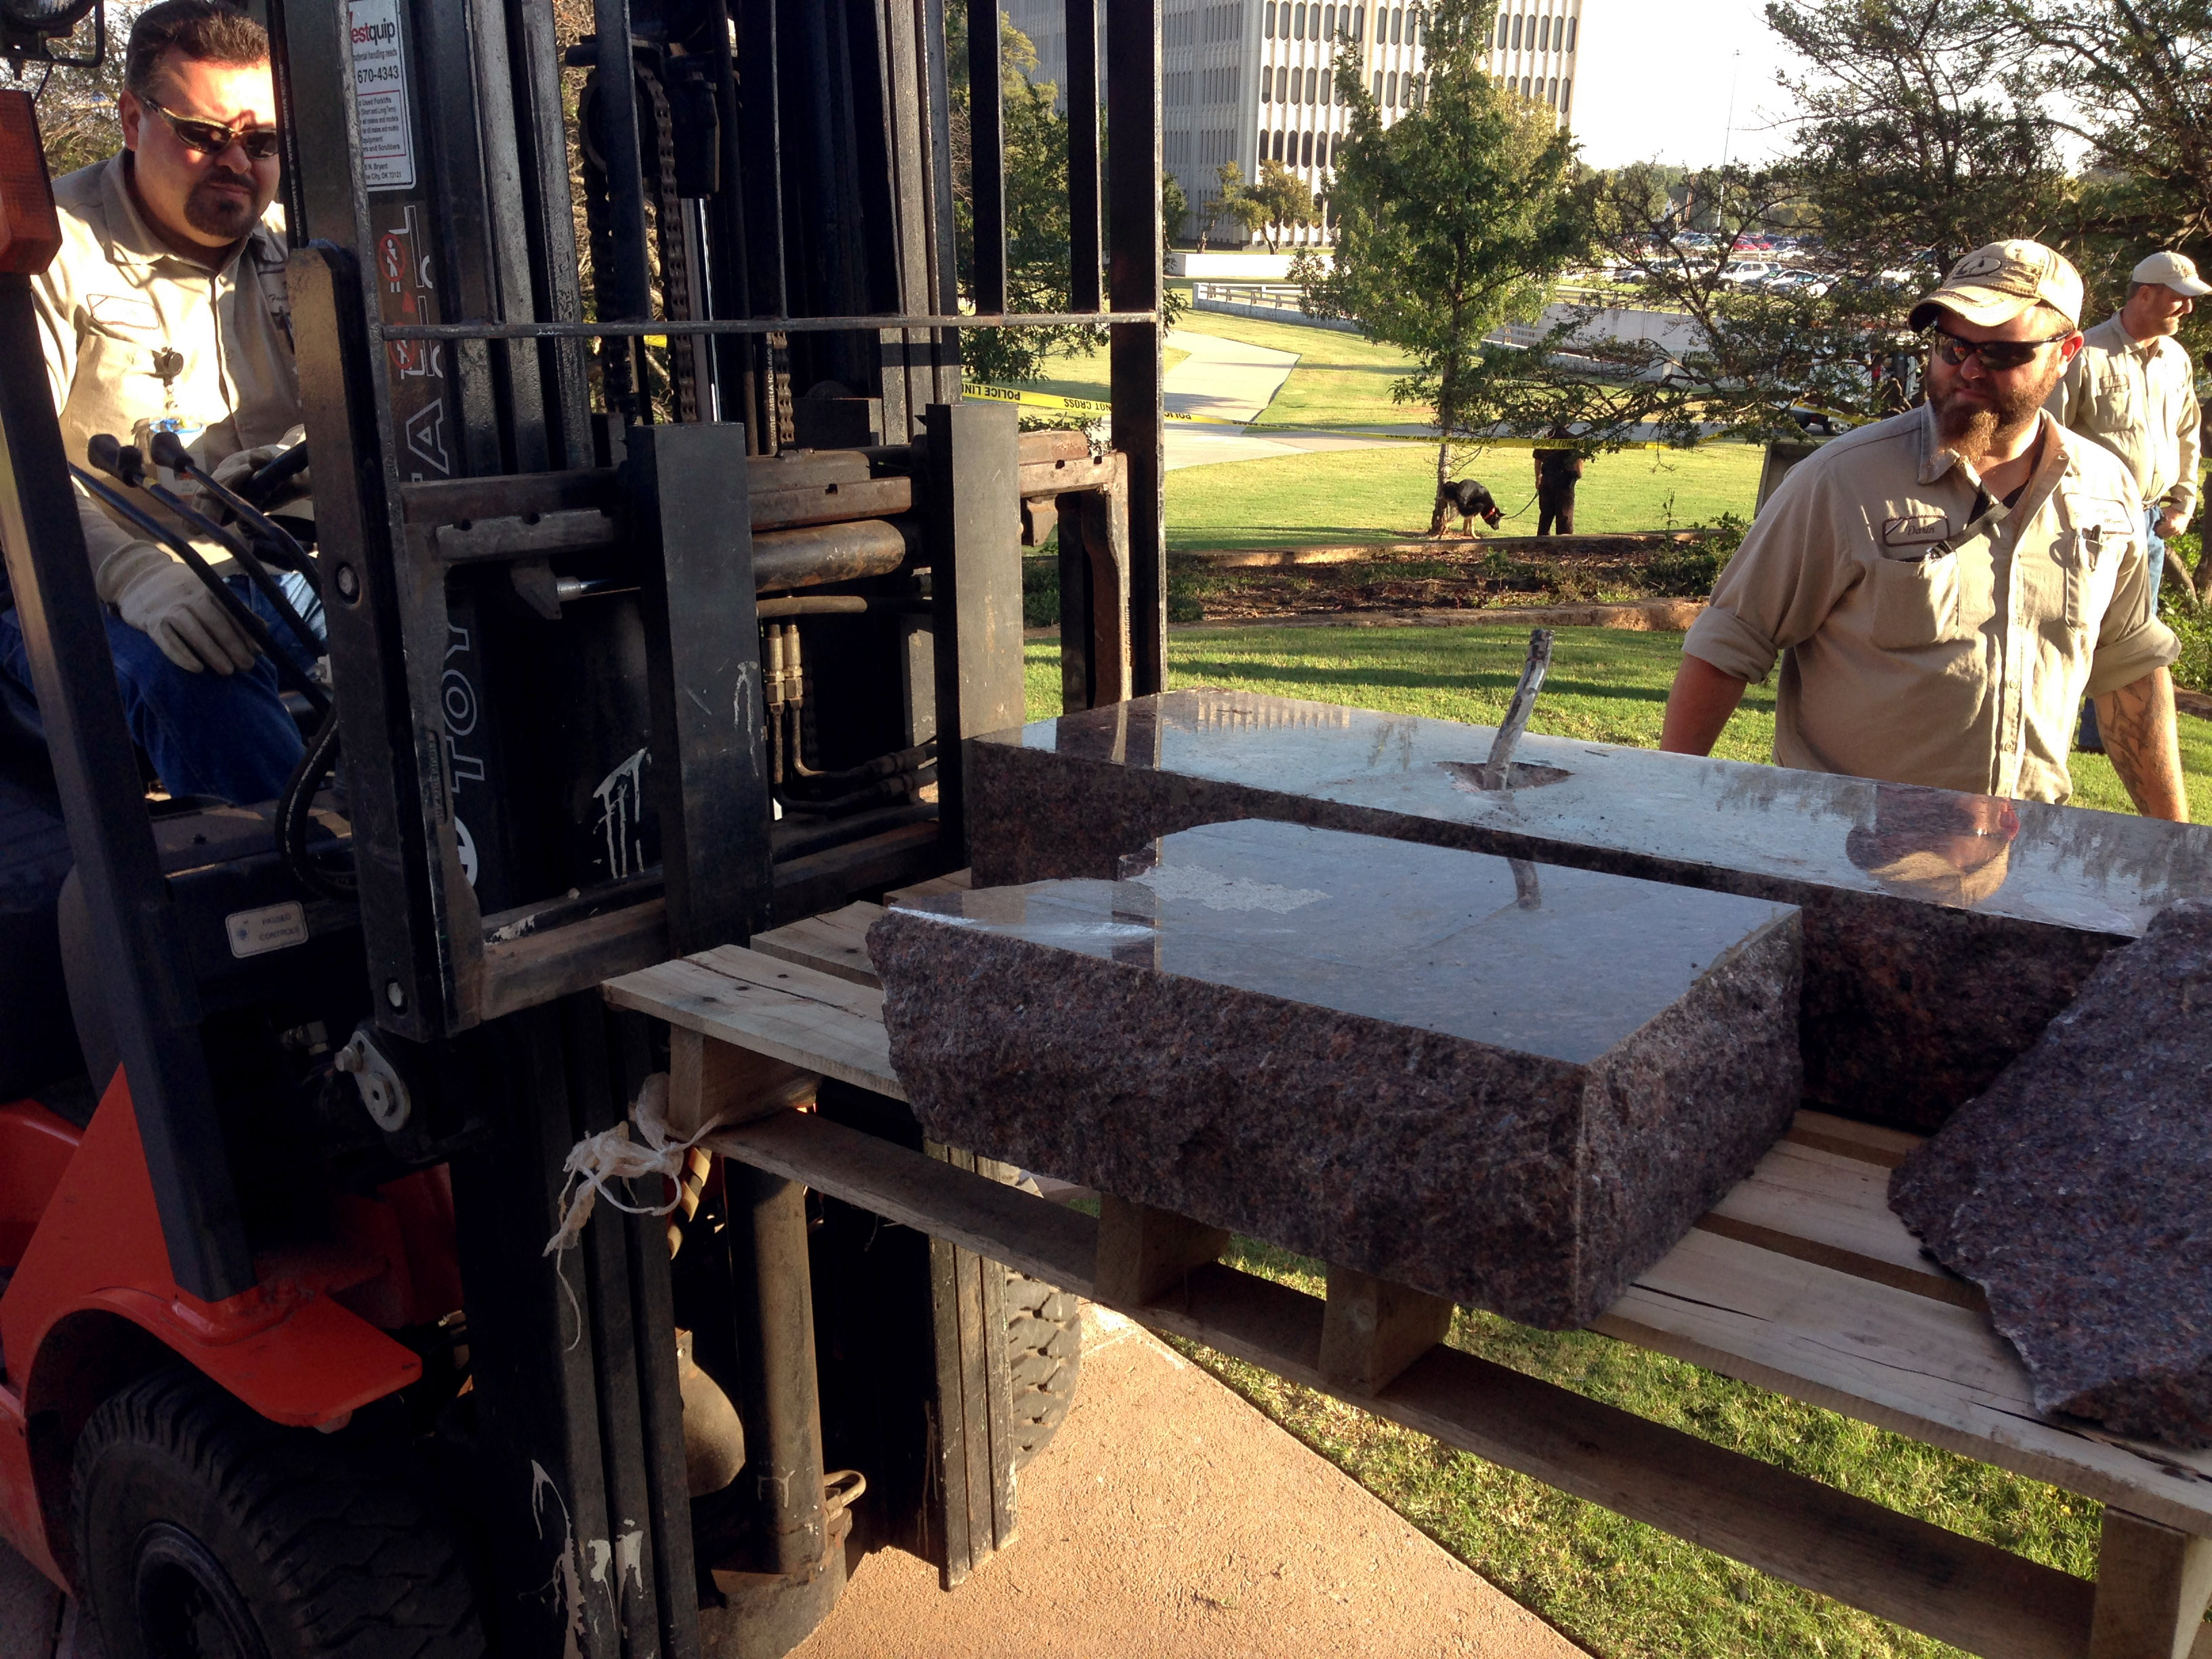 State workers for the Office of Management and Enterprise Services remove the damaged remains of a Ten Commandments monument from the Oklahoma State Capitol grounds on Oct. 24, 2014 in Oklahoma City.